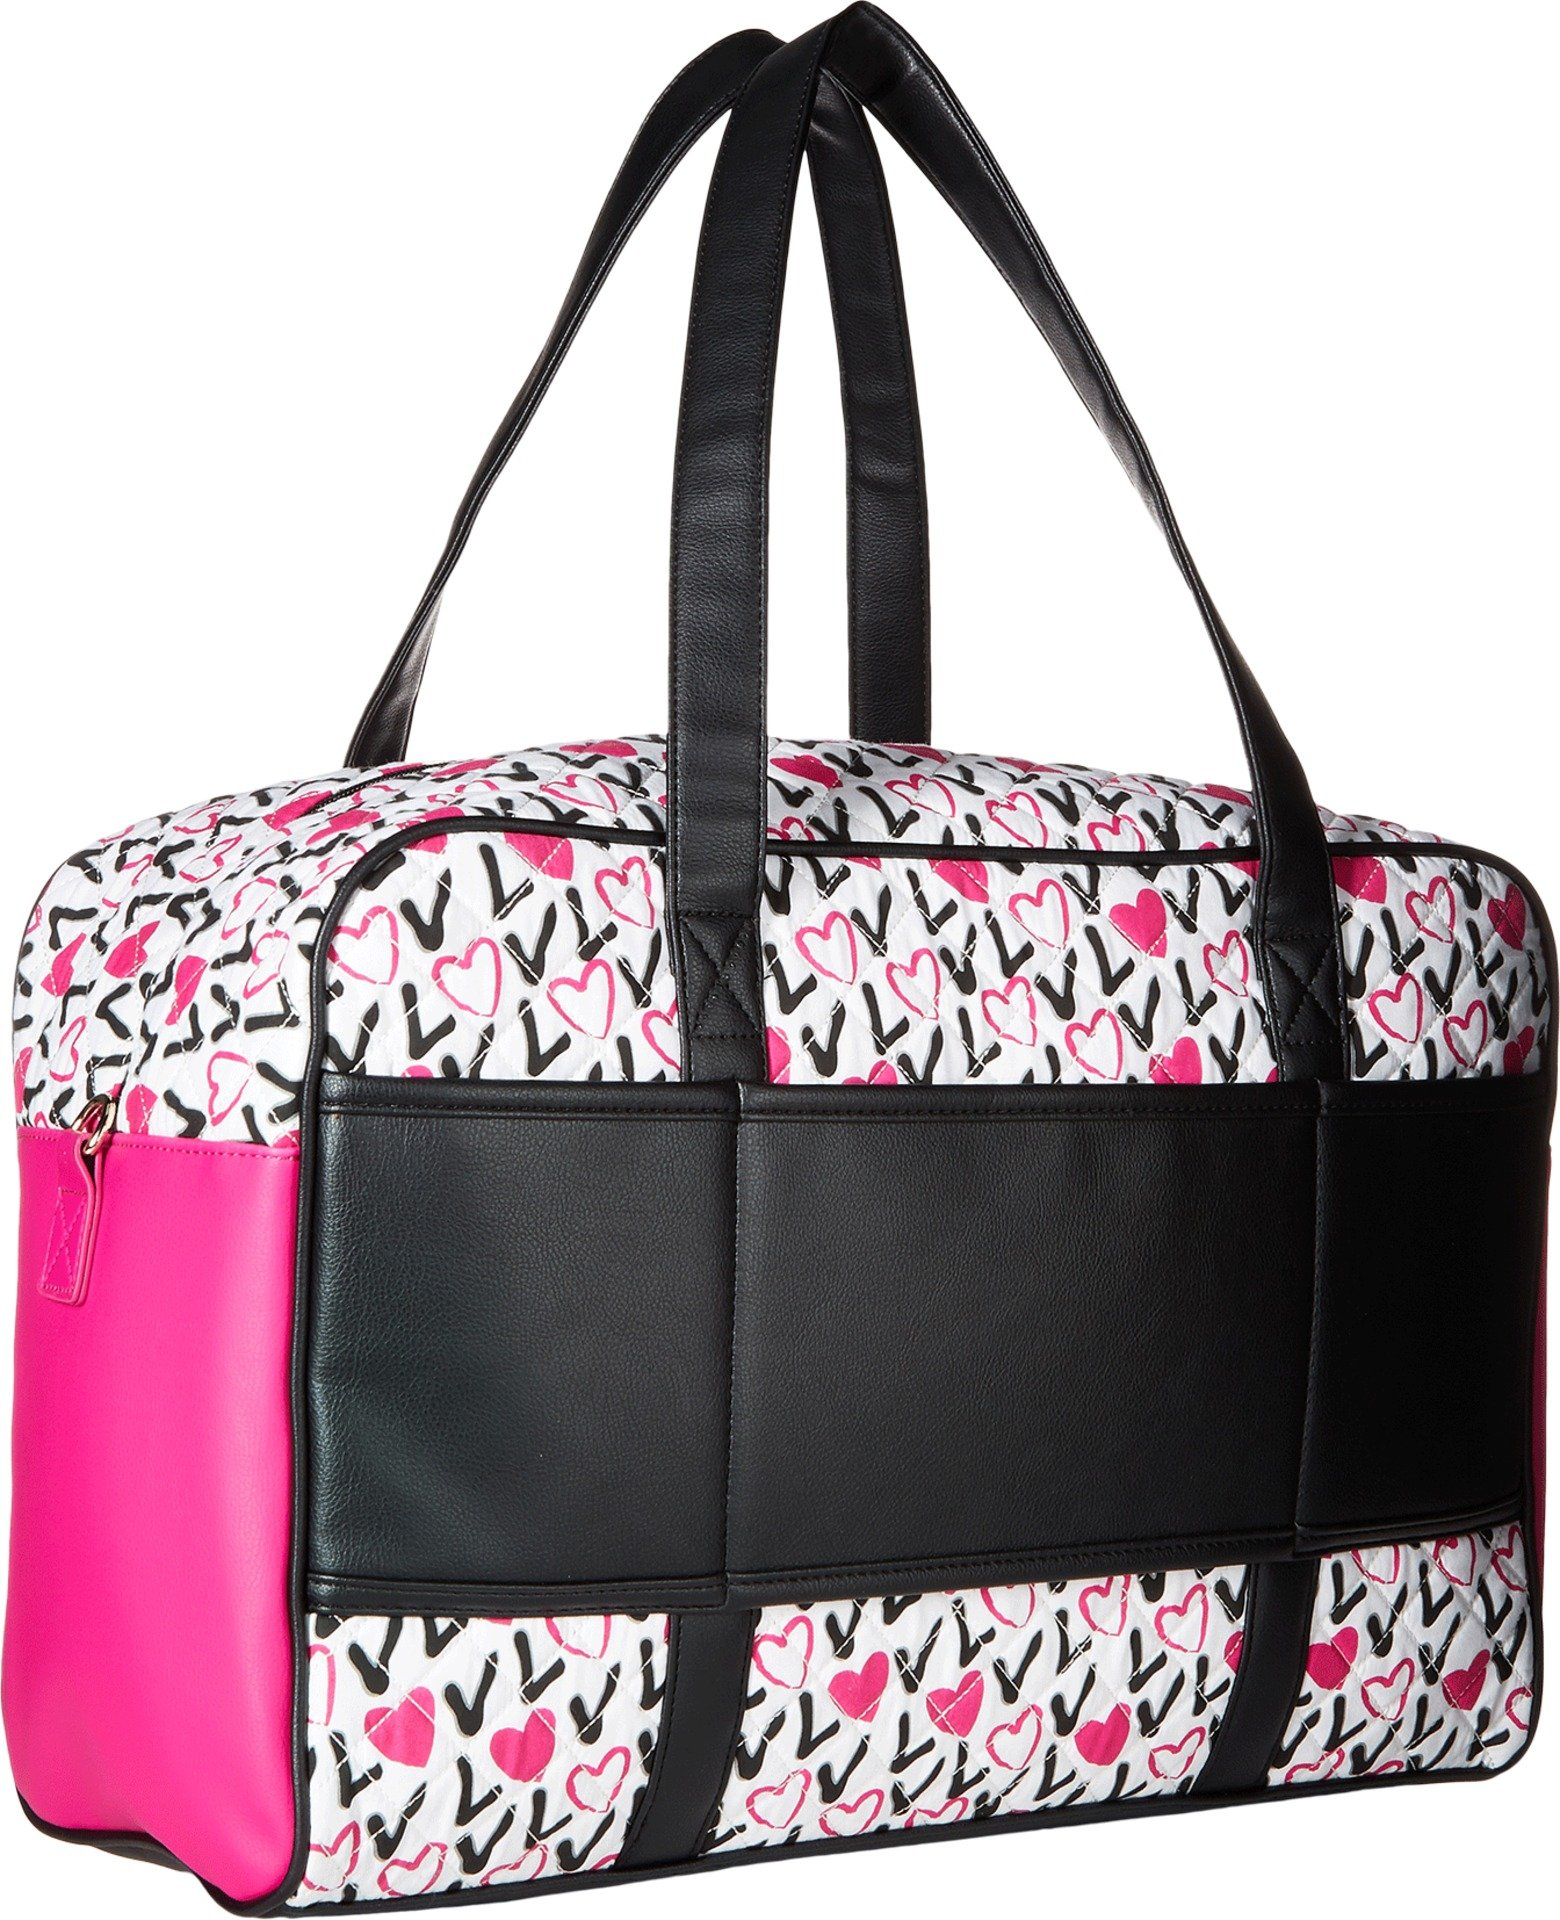 Luv Betsey Women's Cruzin Cotton Weekender w/A Luggage Pass Through On The Back Love Pink-Az One Size by Luv Betsey (Image #2)